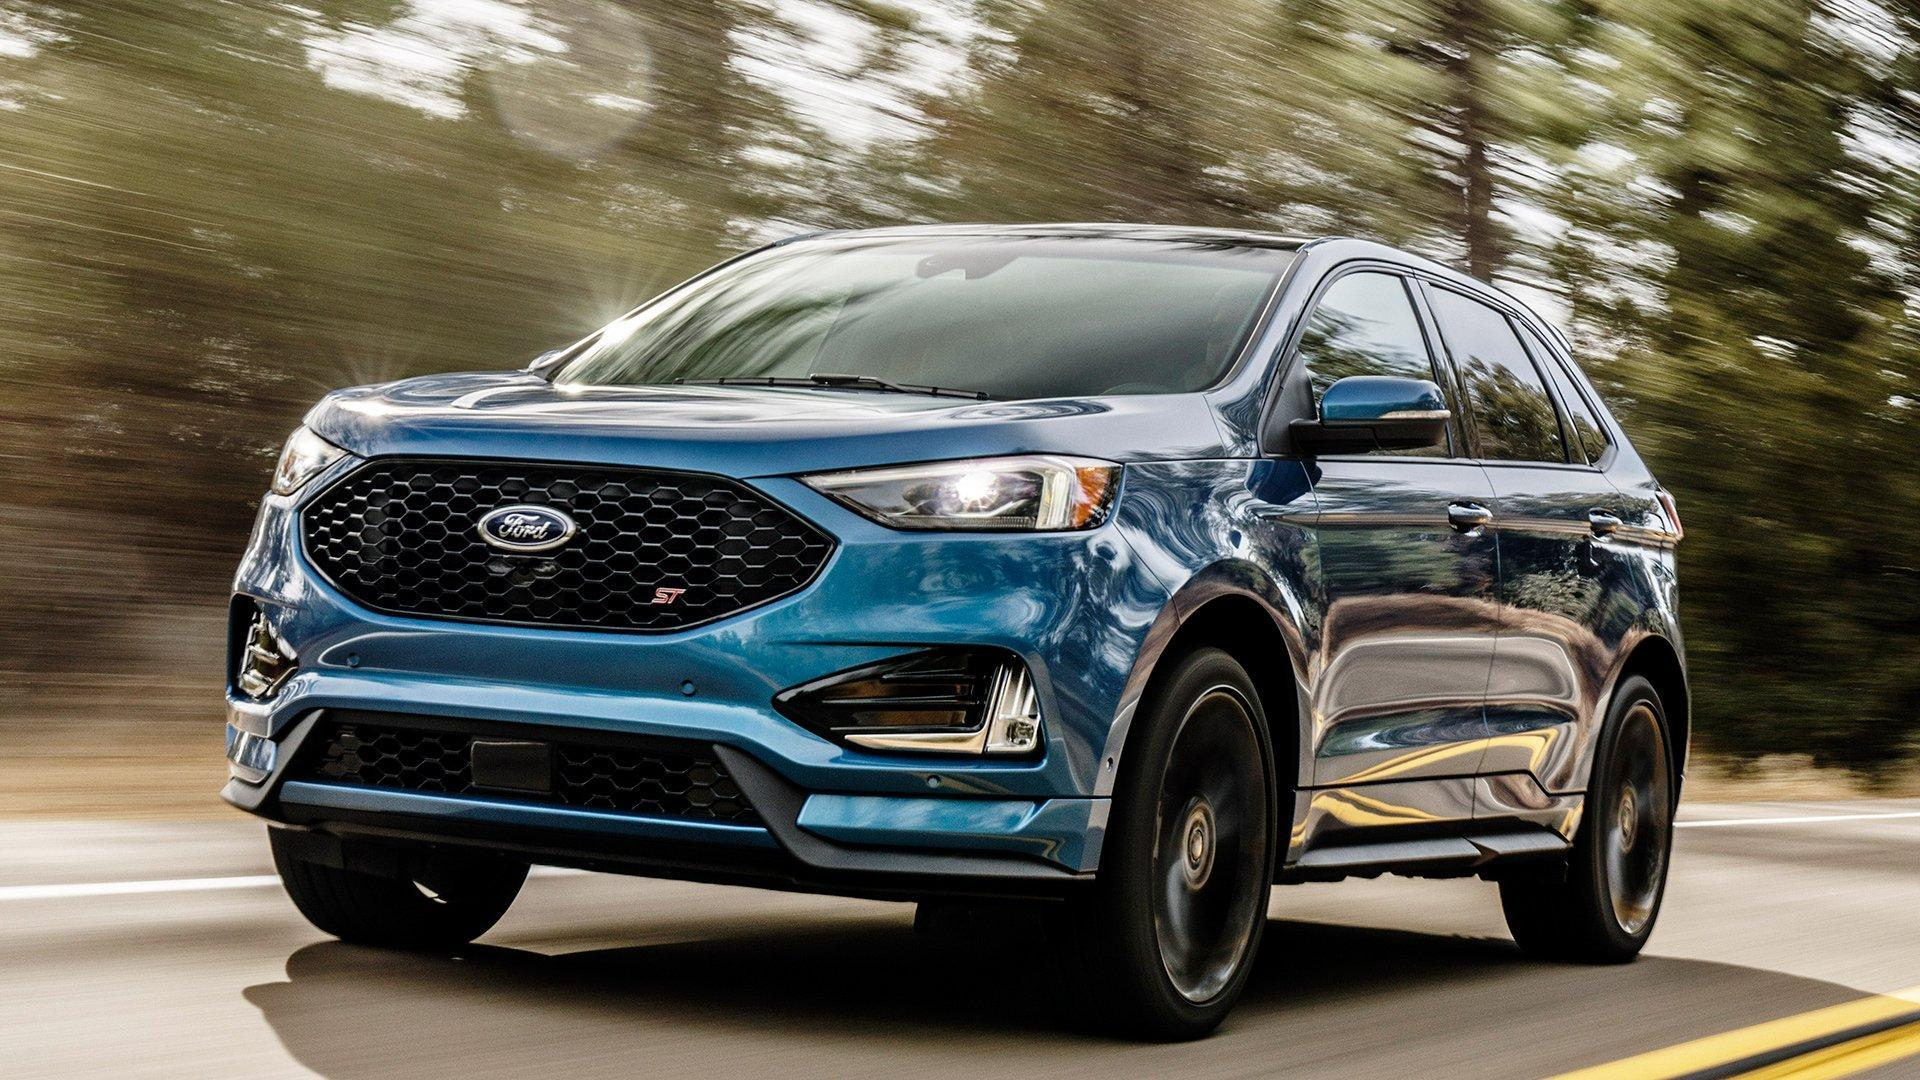 New Ford SUV CrossOvers in St. John's, NL